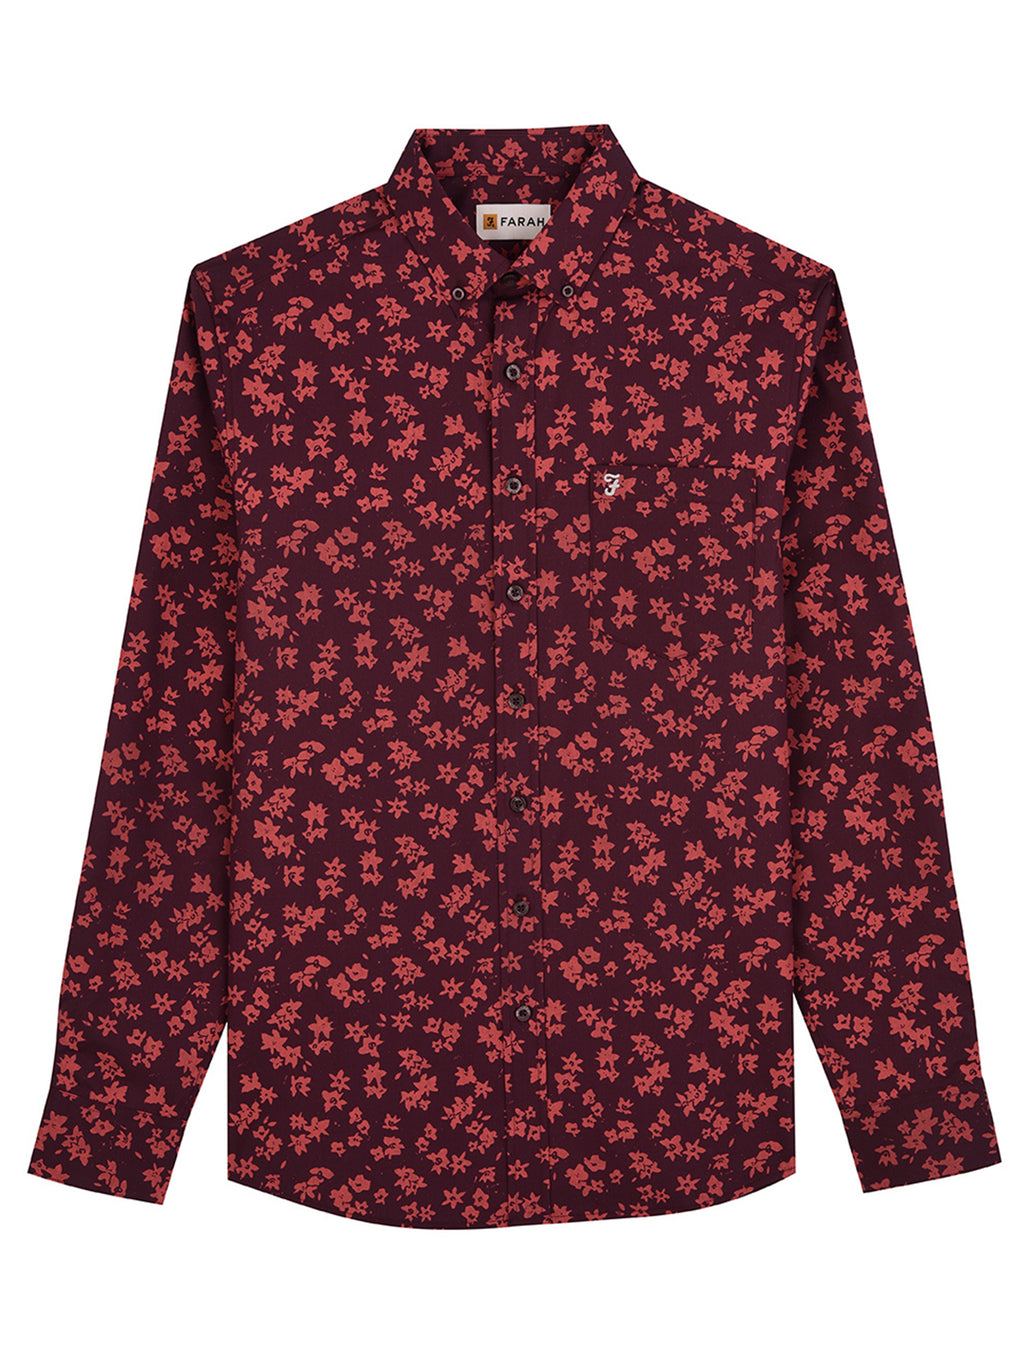 farah shirt red